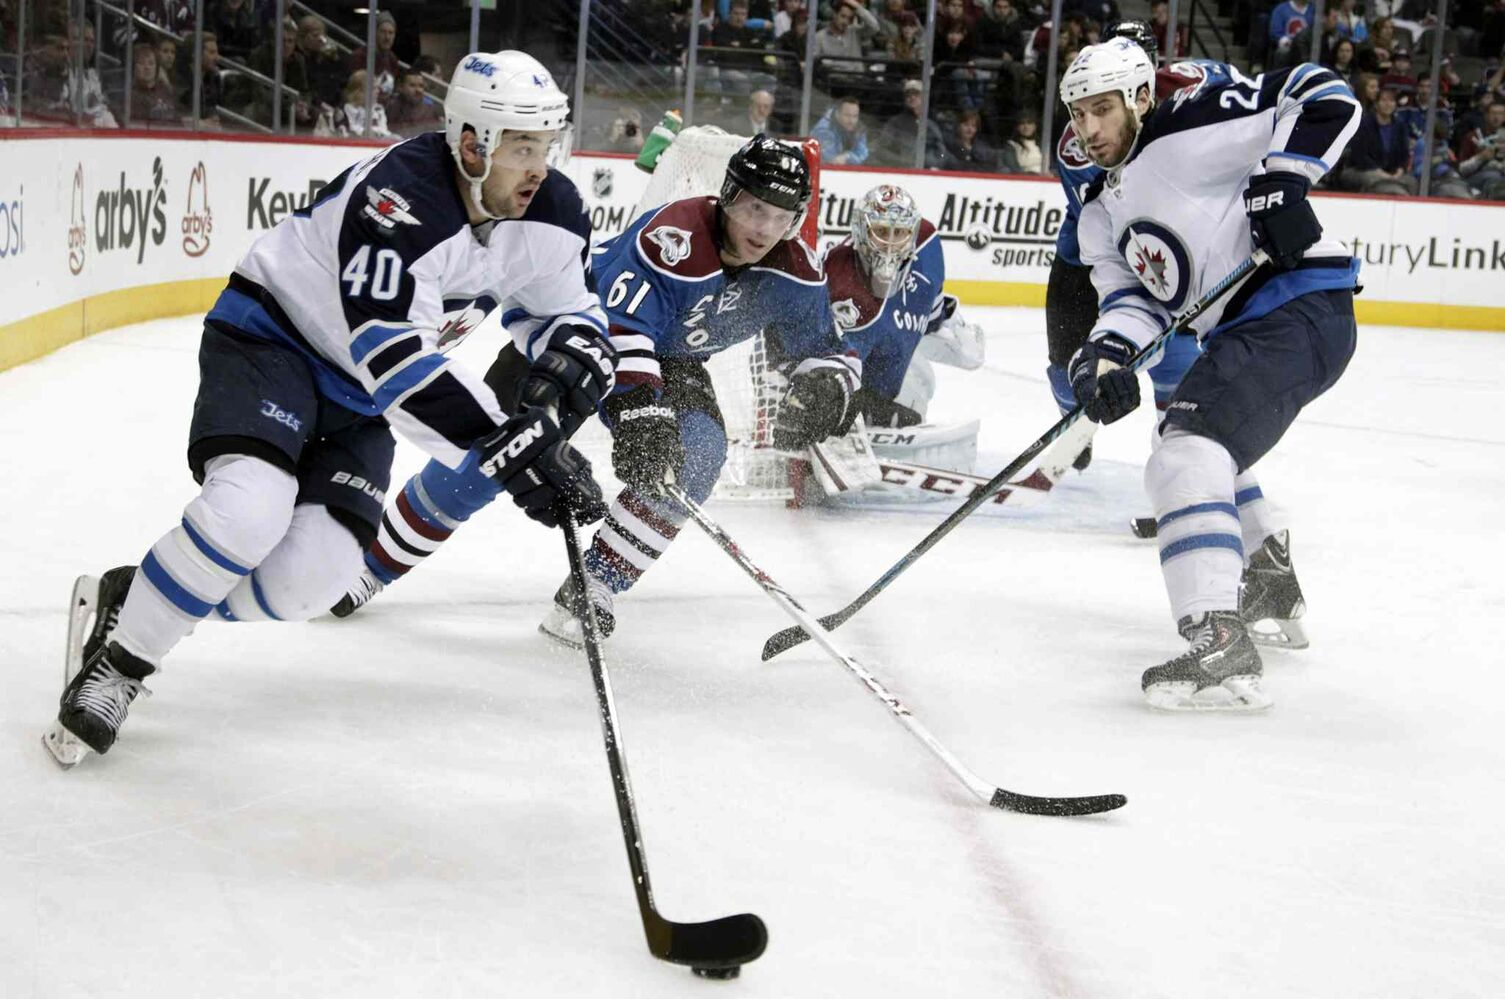 Winnipeg Jets winger Devin Setoguchi (left) carries the puck along the boards as Colorado Avalanche defenceman Andre Benoit (61) gives chase and Jets winger Chris Thorburn (right) and Avalanche goalie Semyon Varlamov watch. (Joe Mahoney / The Associated Press)